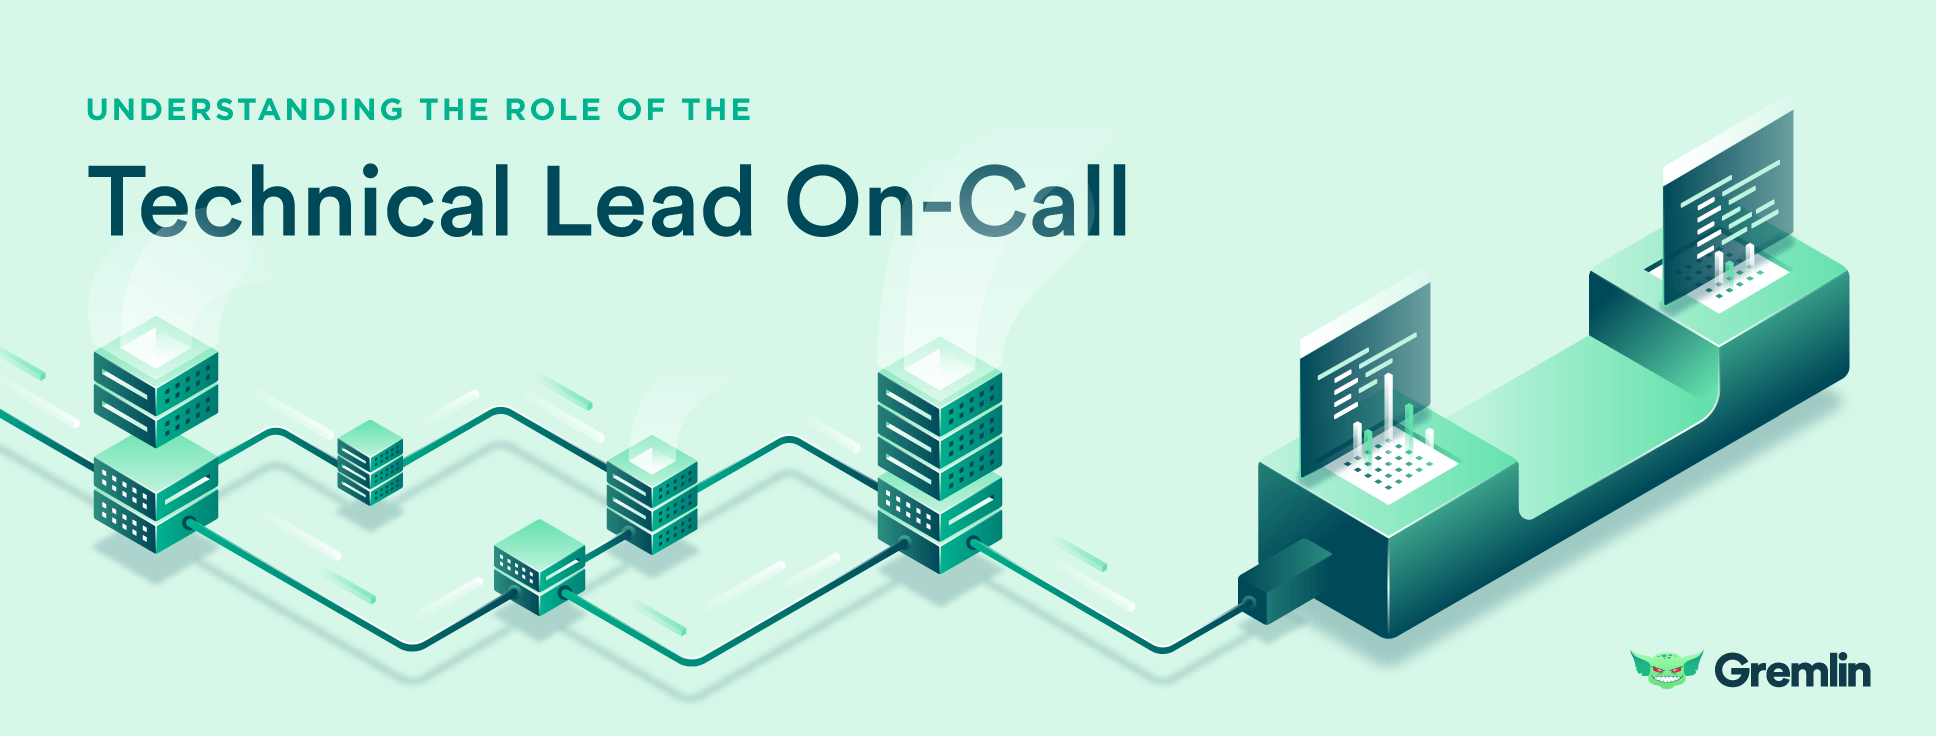 Understanding The Role Of The Technical Lead On-Call (TLOC)